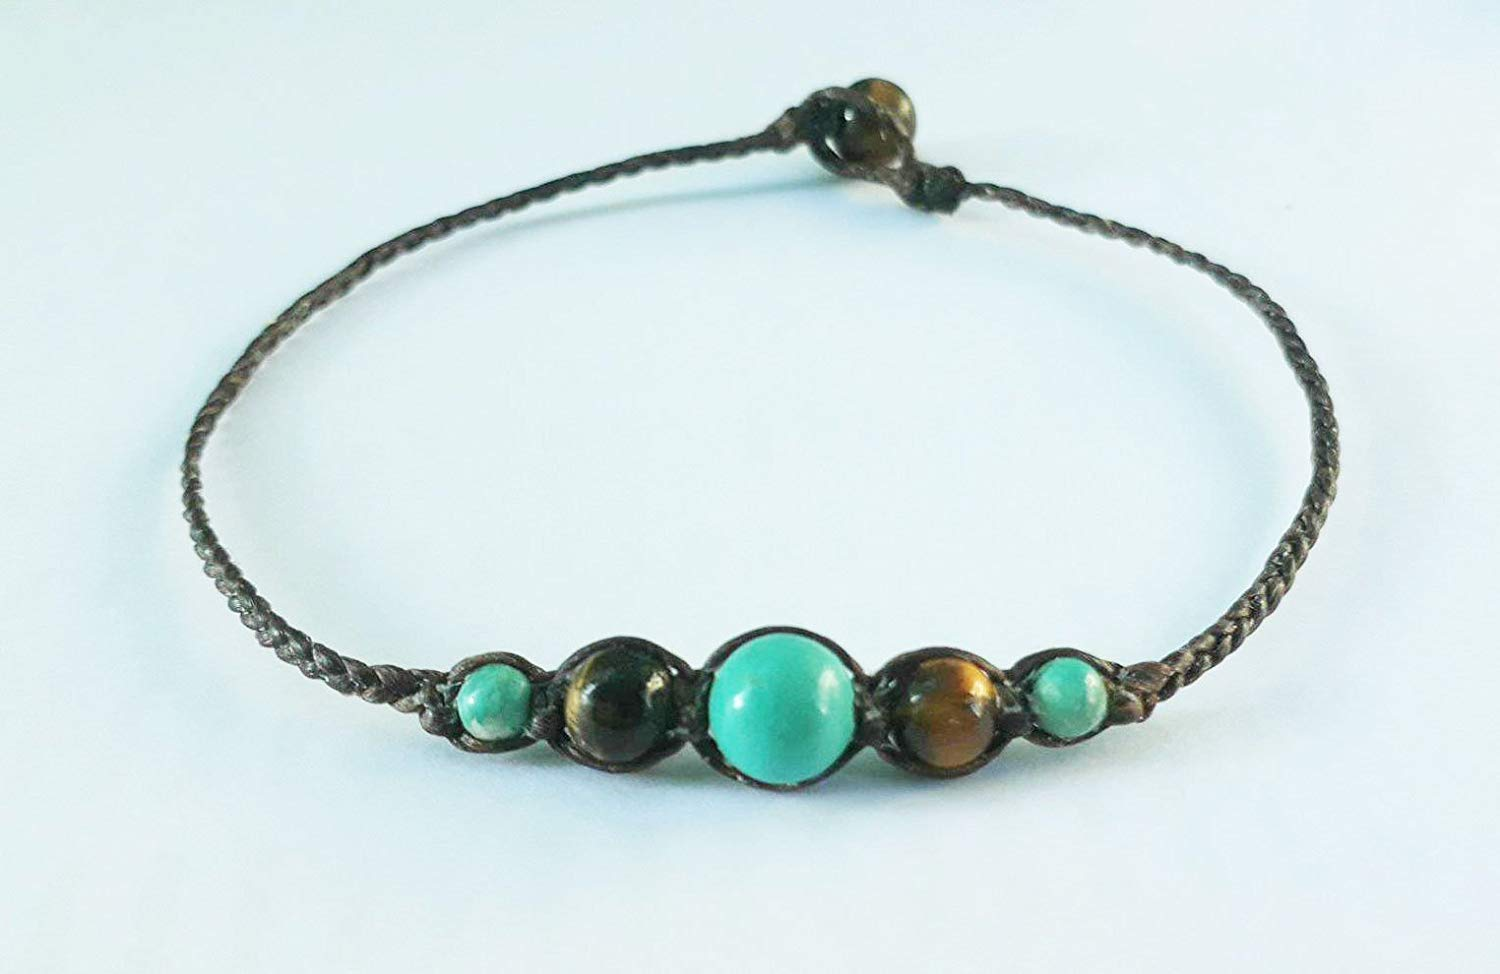 Turquoise anklets,tiger eye anklets,stone anklets,men anklets,women anklets,fashion anklets